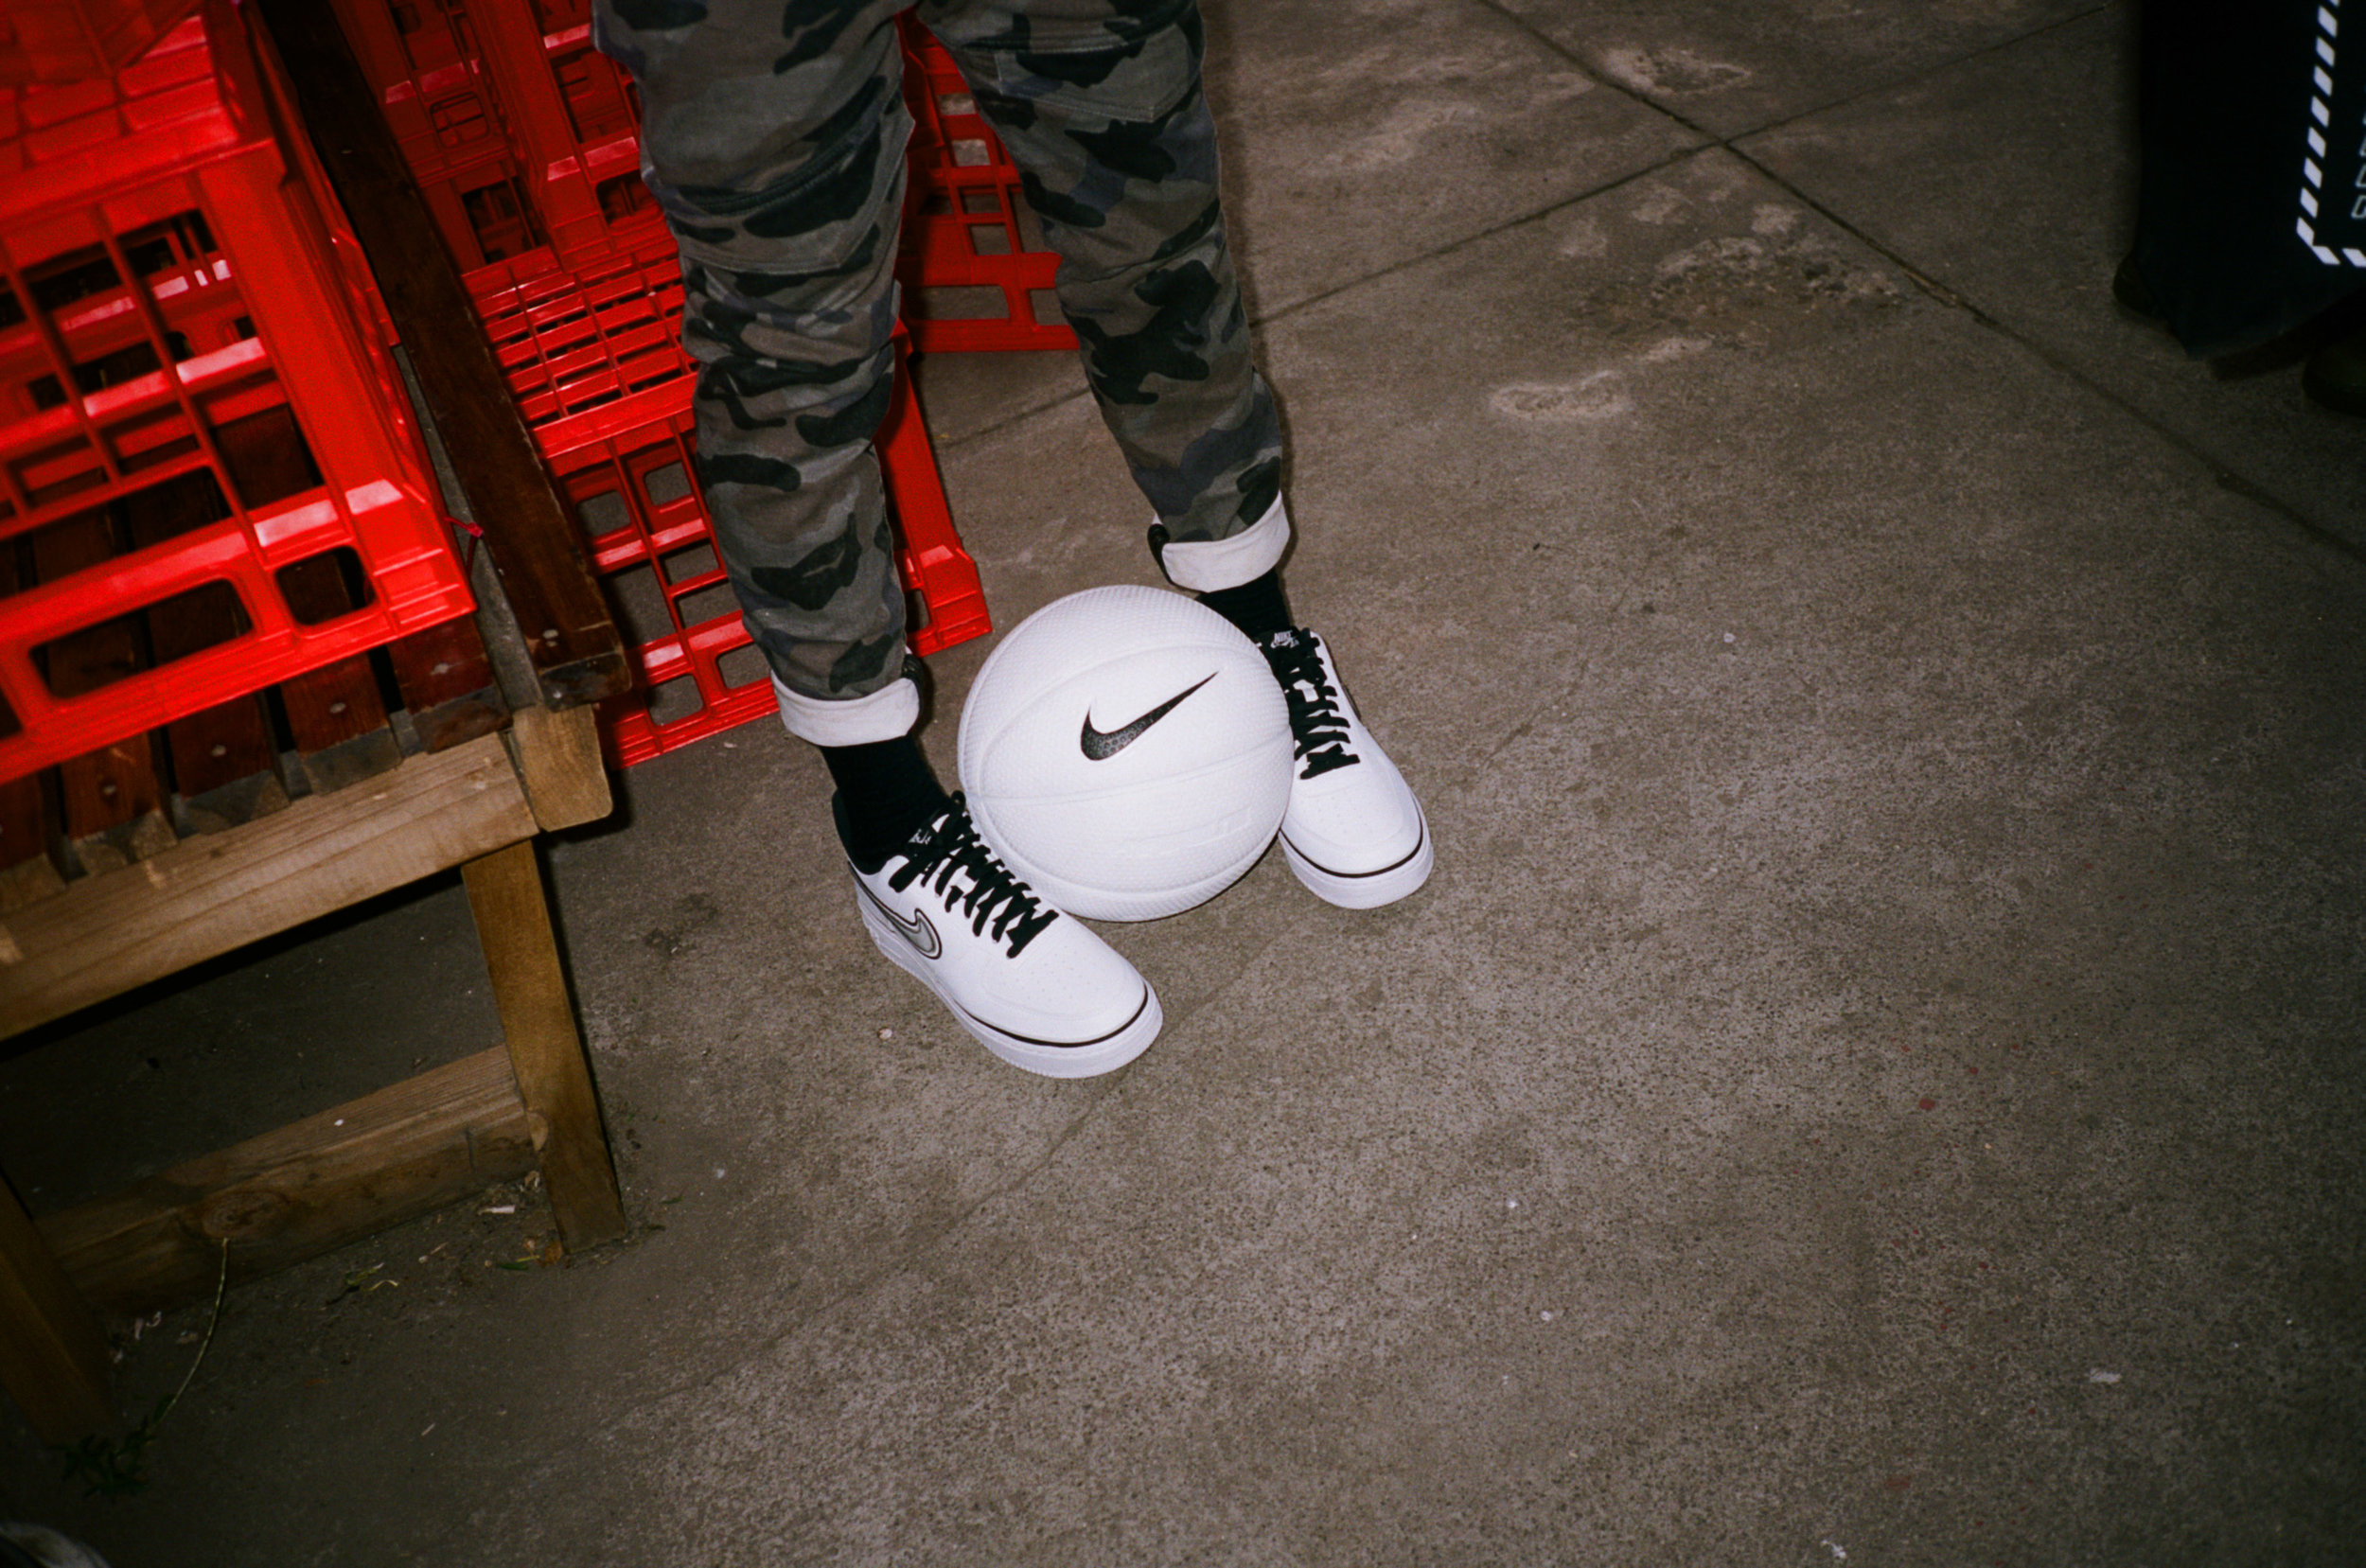 nikebattleforce_35mm_chrisloutfy-18.jpg